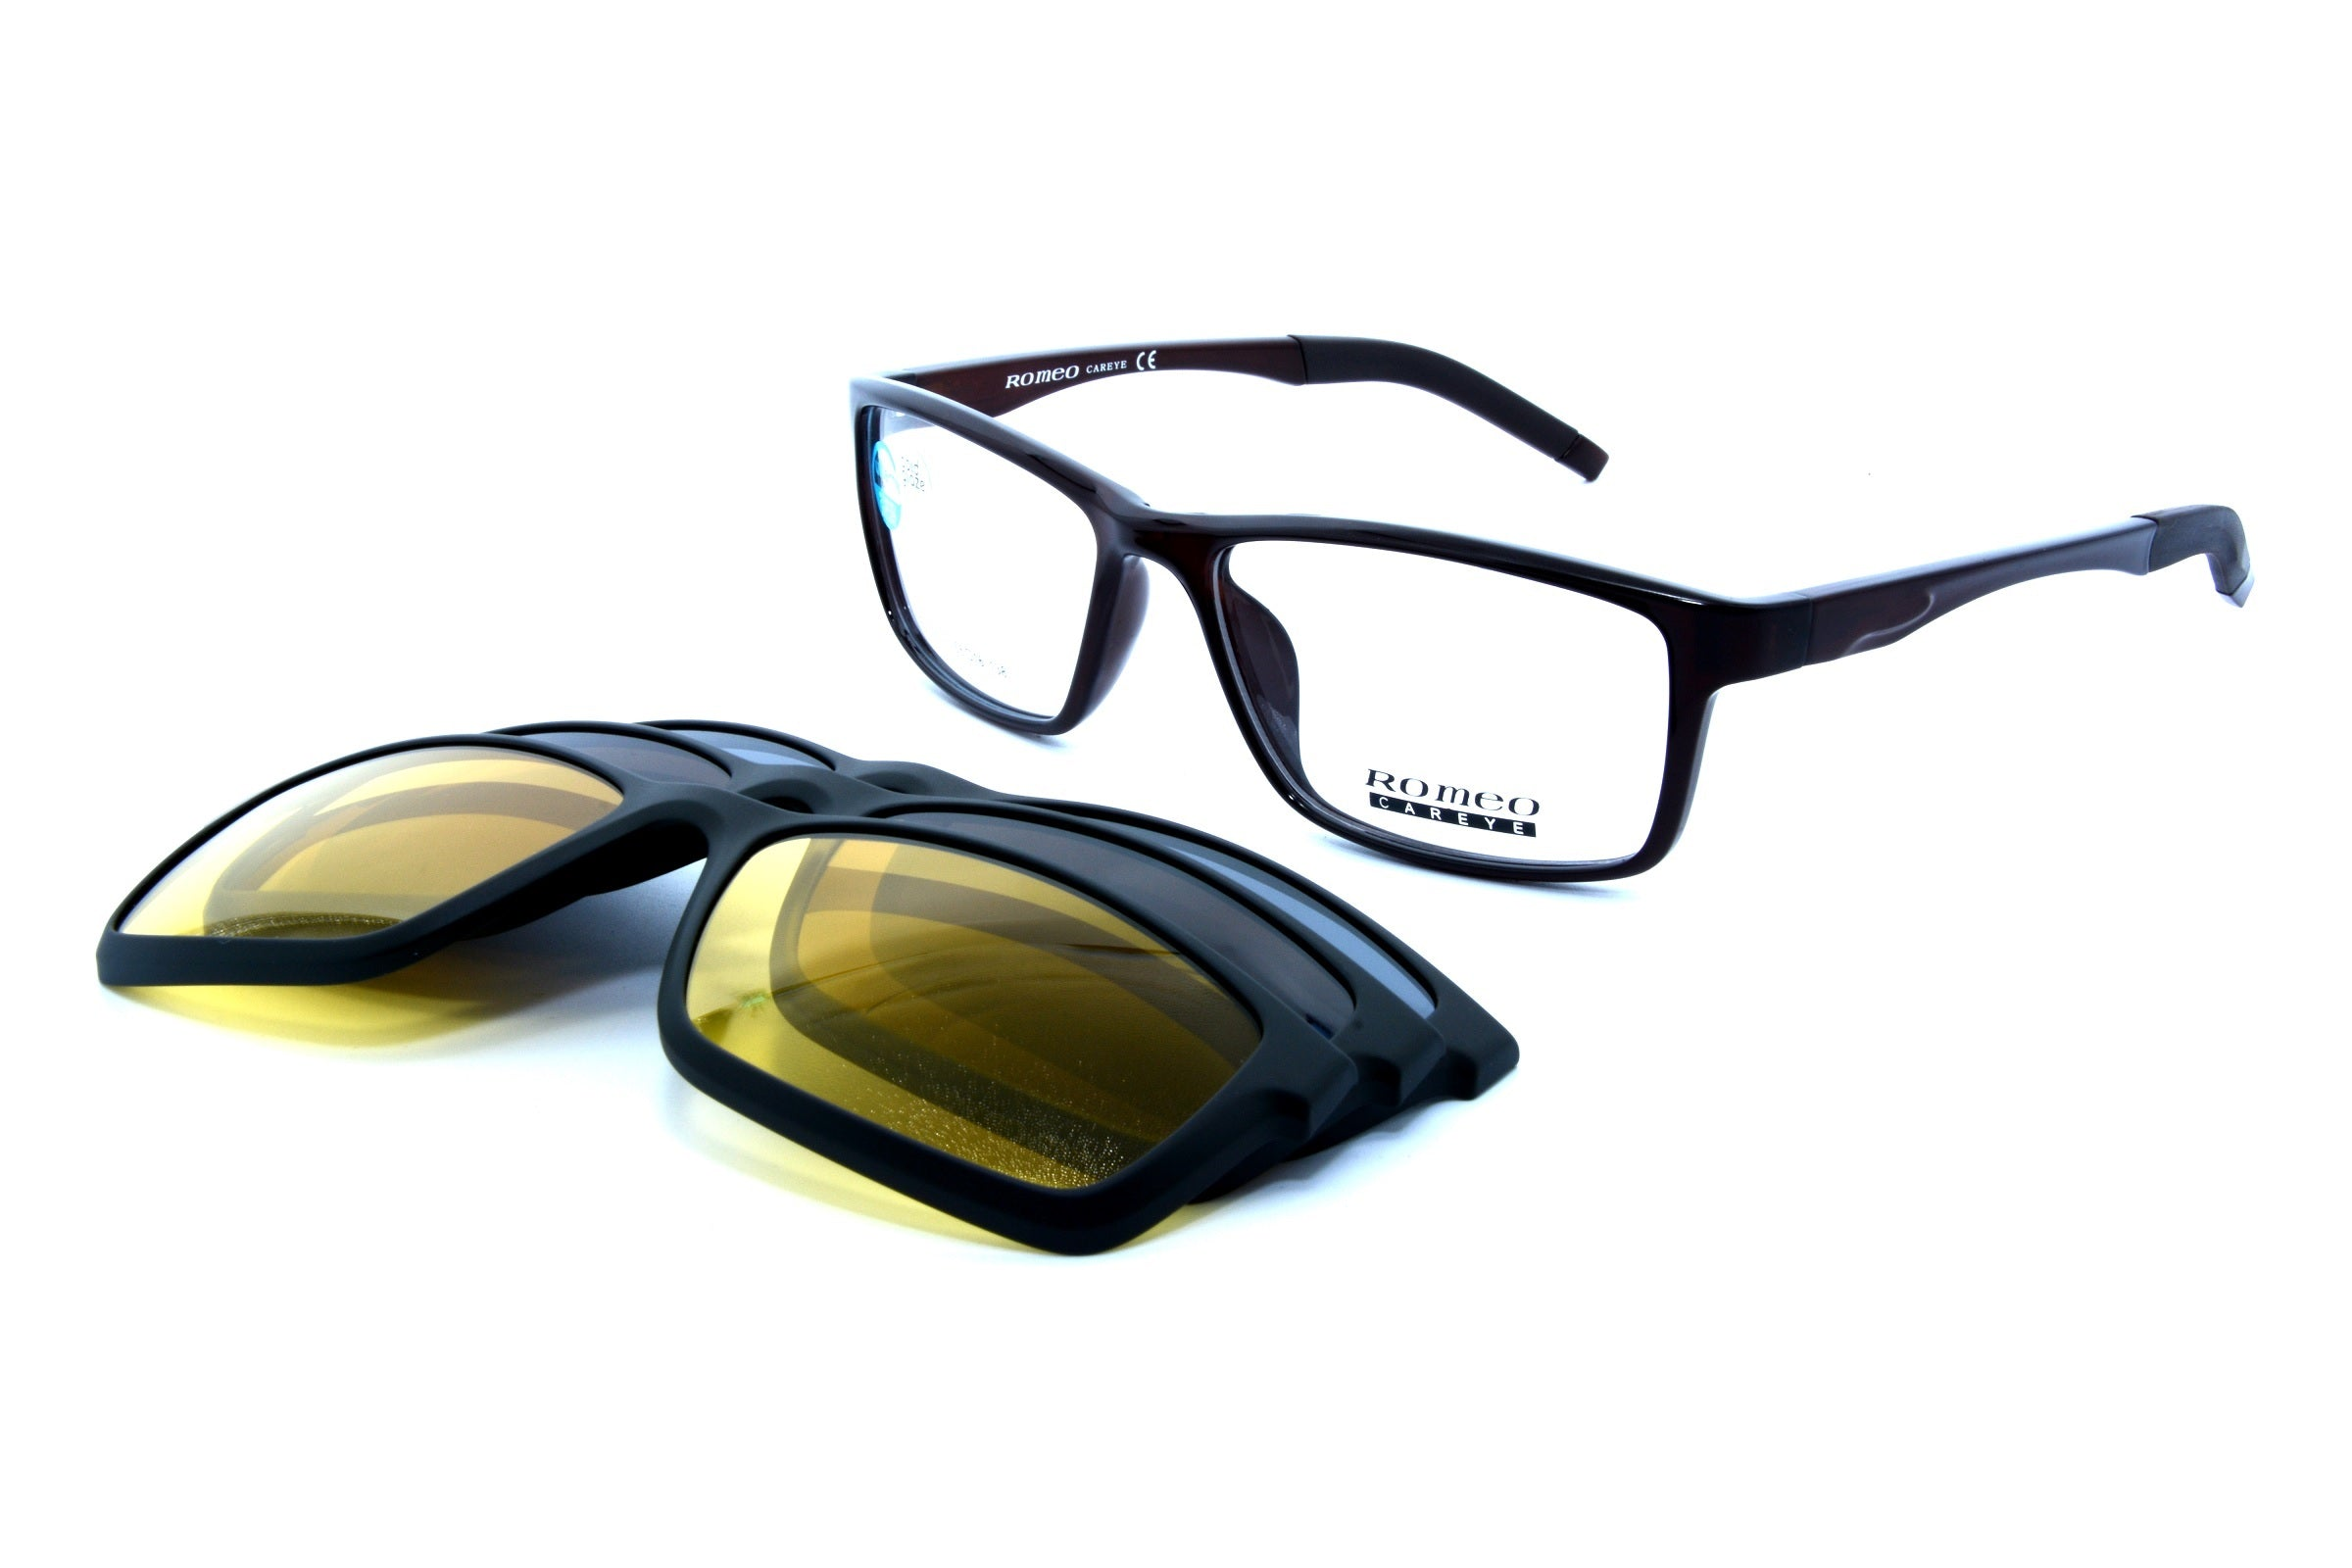 Romeo eyewear with clips 25432, C4, 1 - Optics Trading